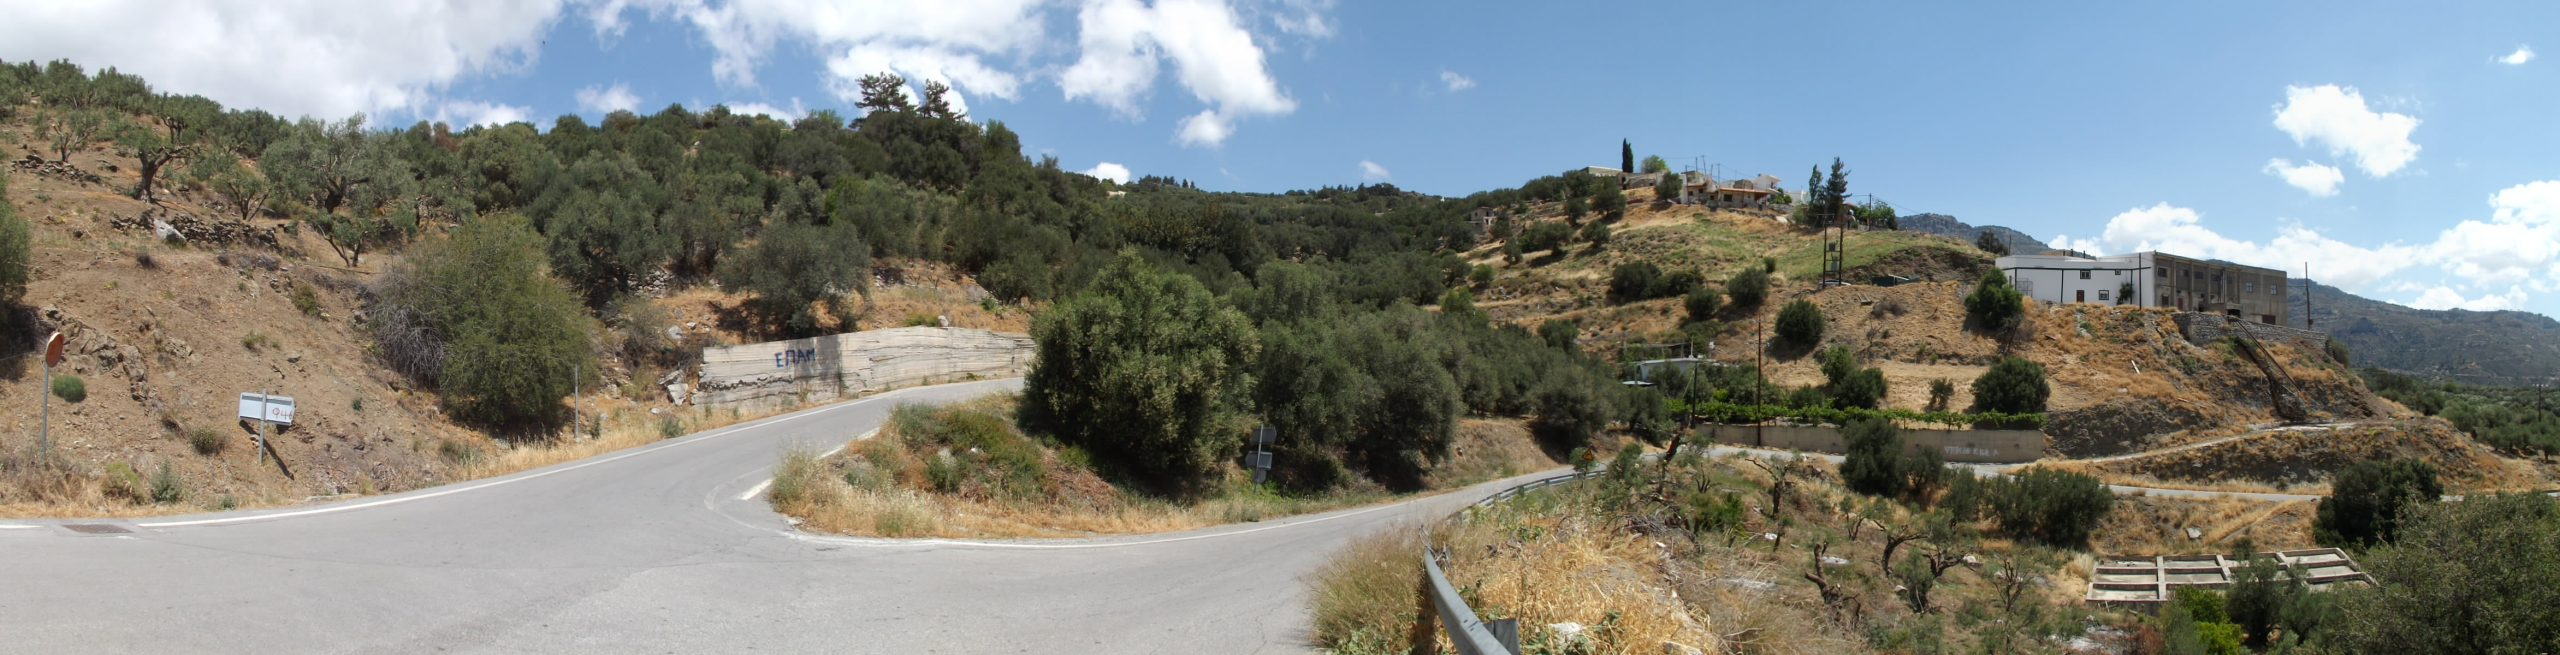 Outskirts Of Males - Road Junction To Mirtos